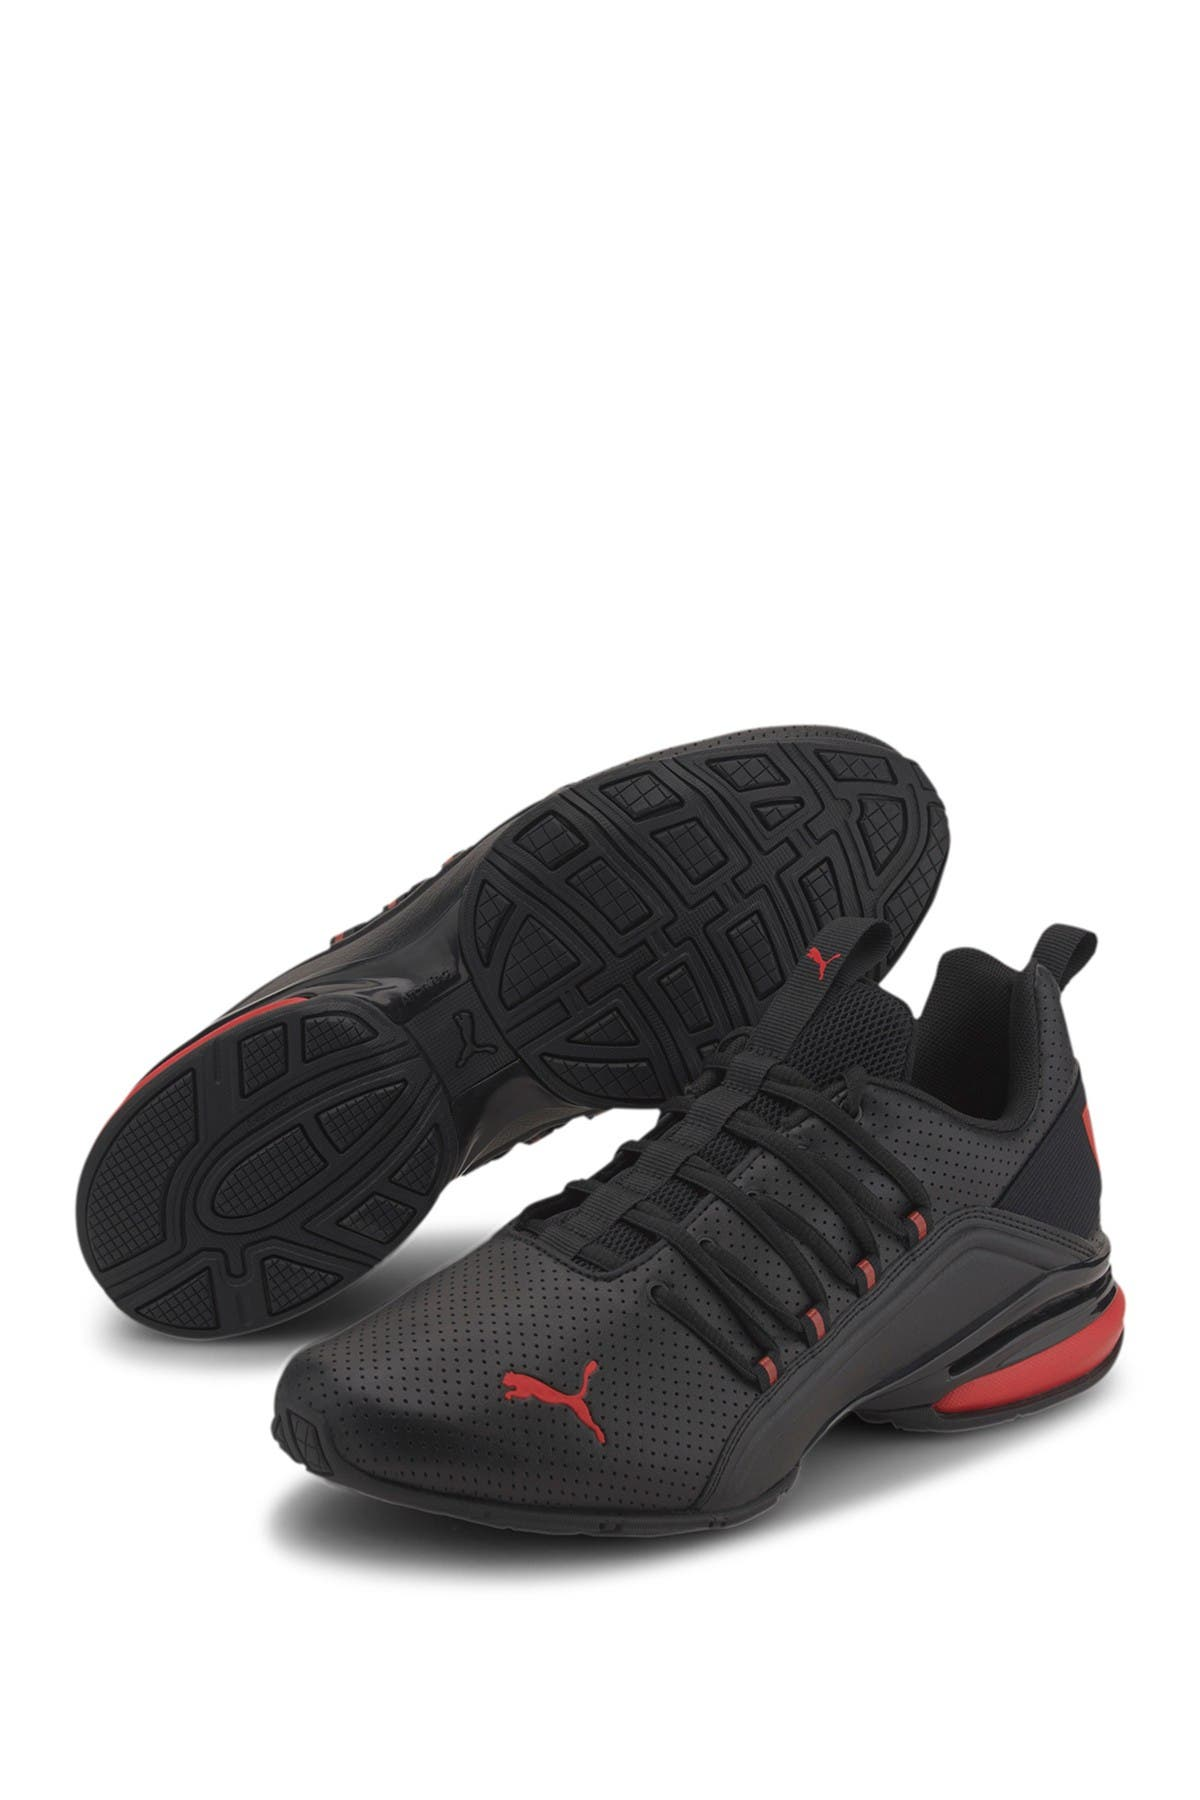 Image of PUMA Axelion Perforated Training Sneaker